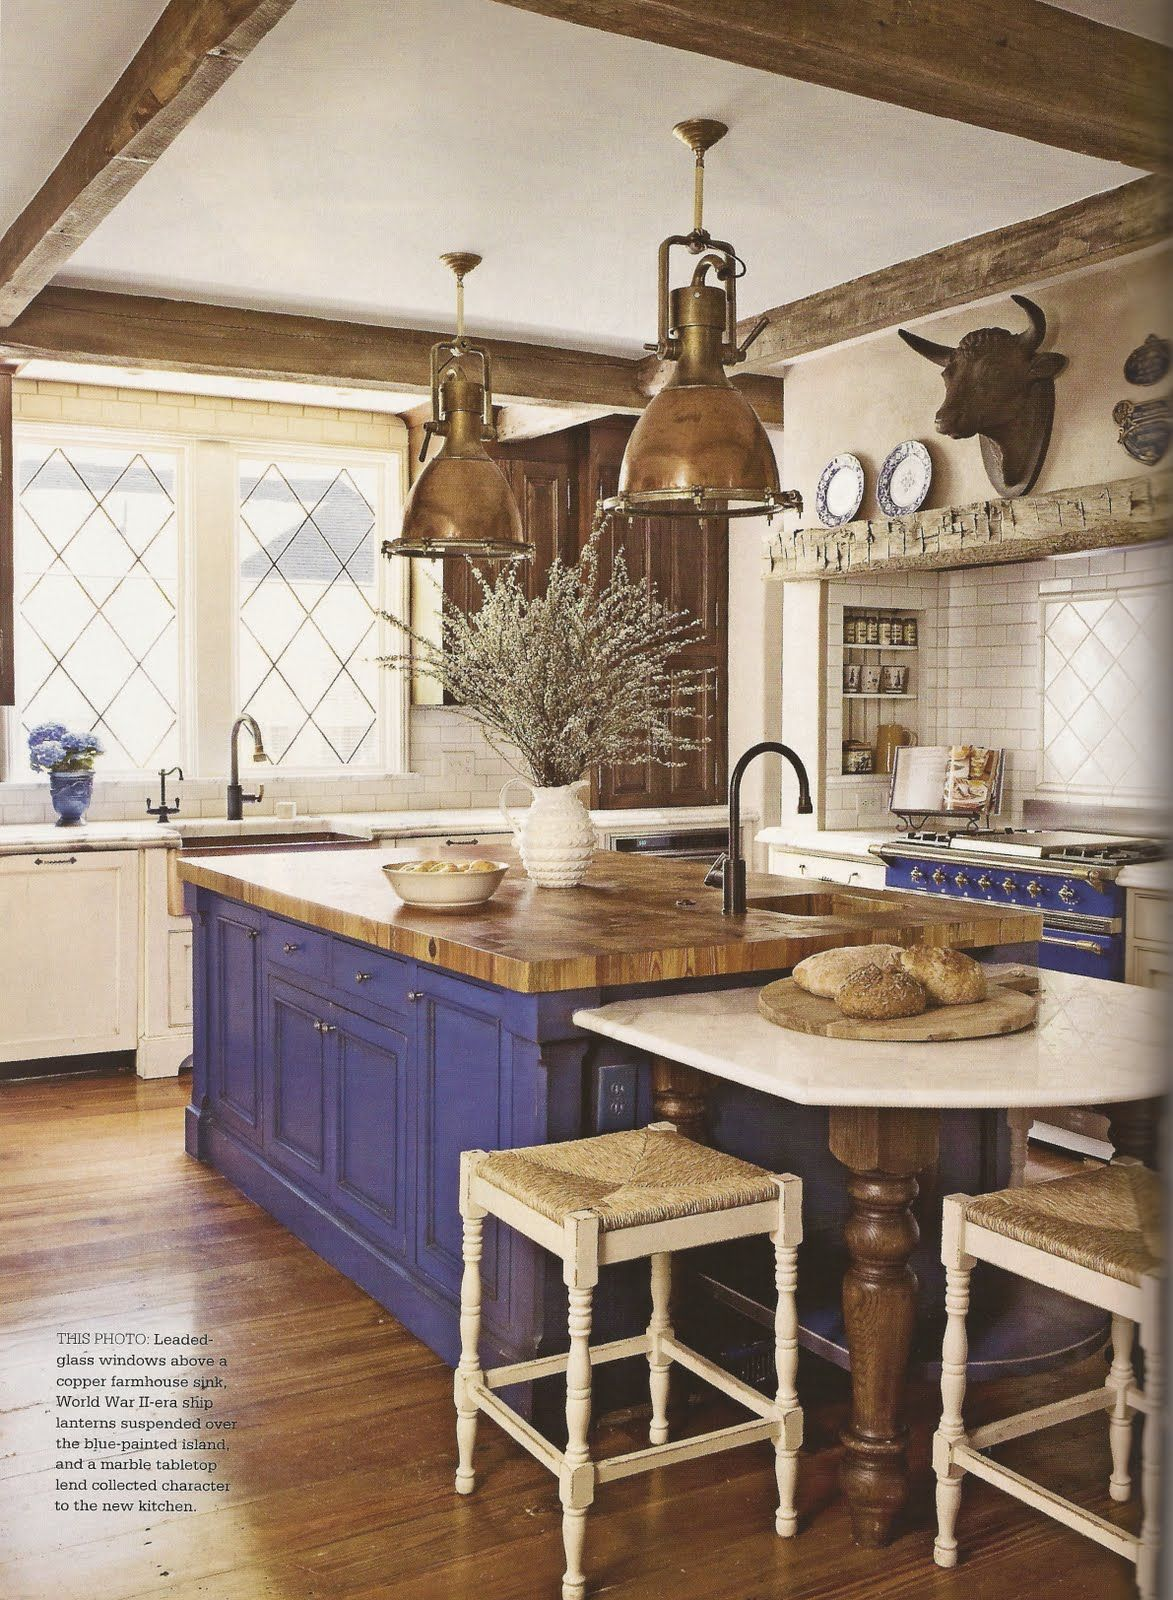 Elegant This Blue Island Color Is Similar To The Blue On The Countertops. If We Do  A Blue Island, The Color Should Be Inspired By The Tiles. French Country  Kitchen ...